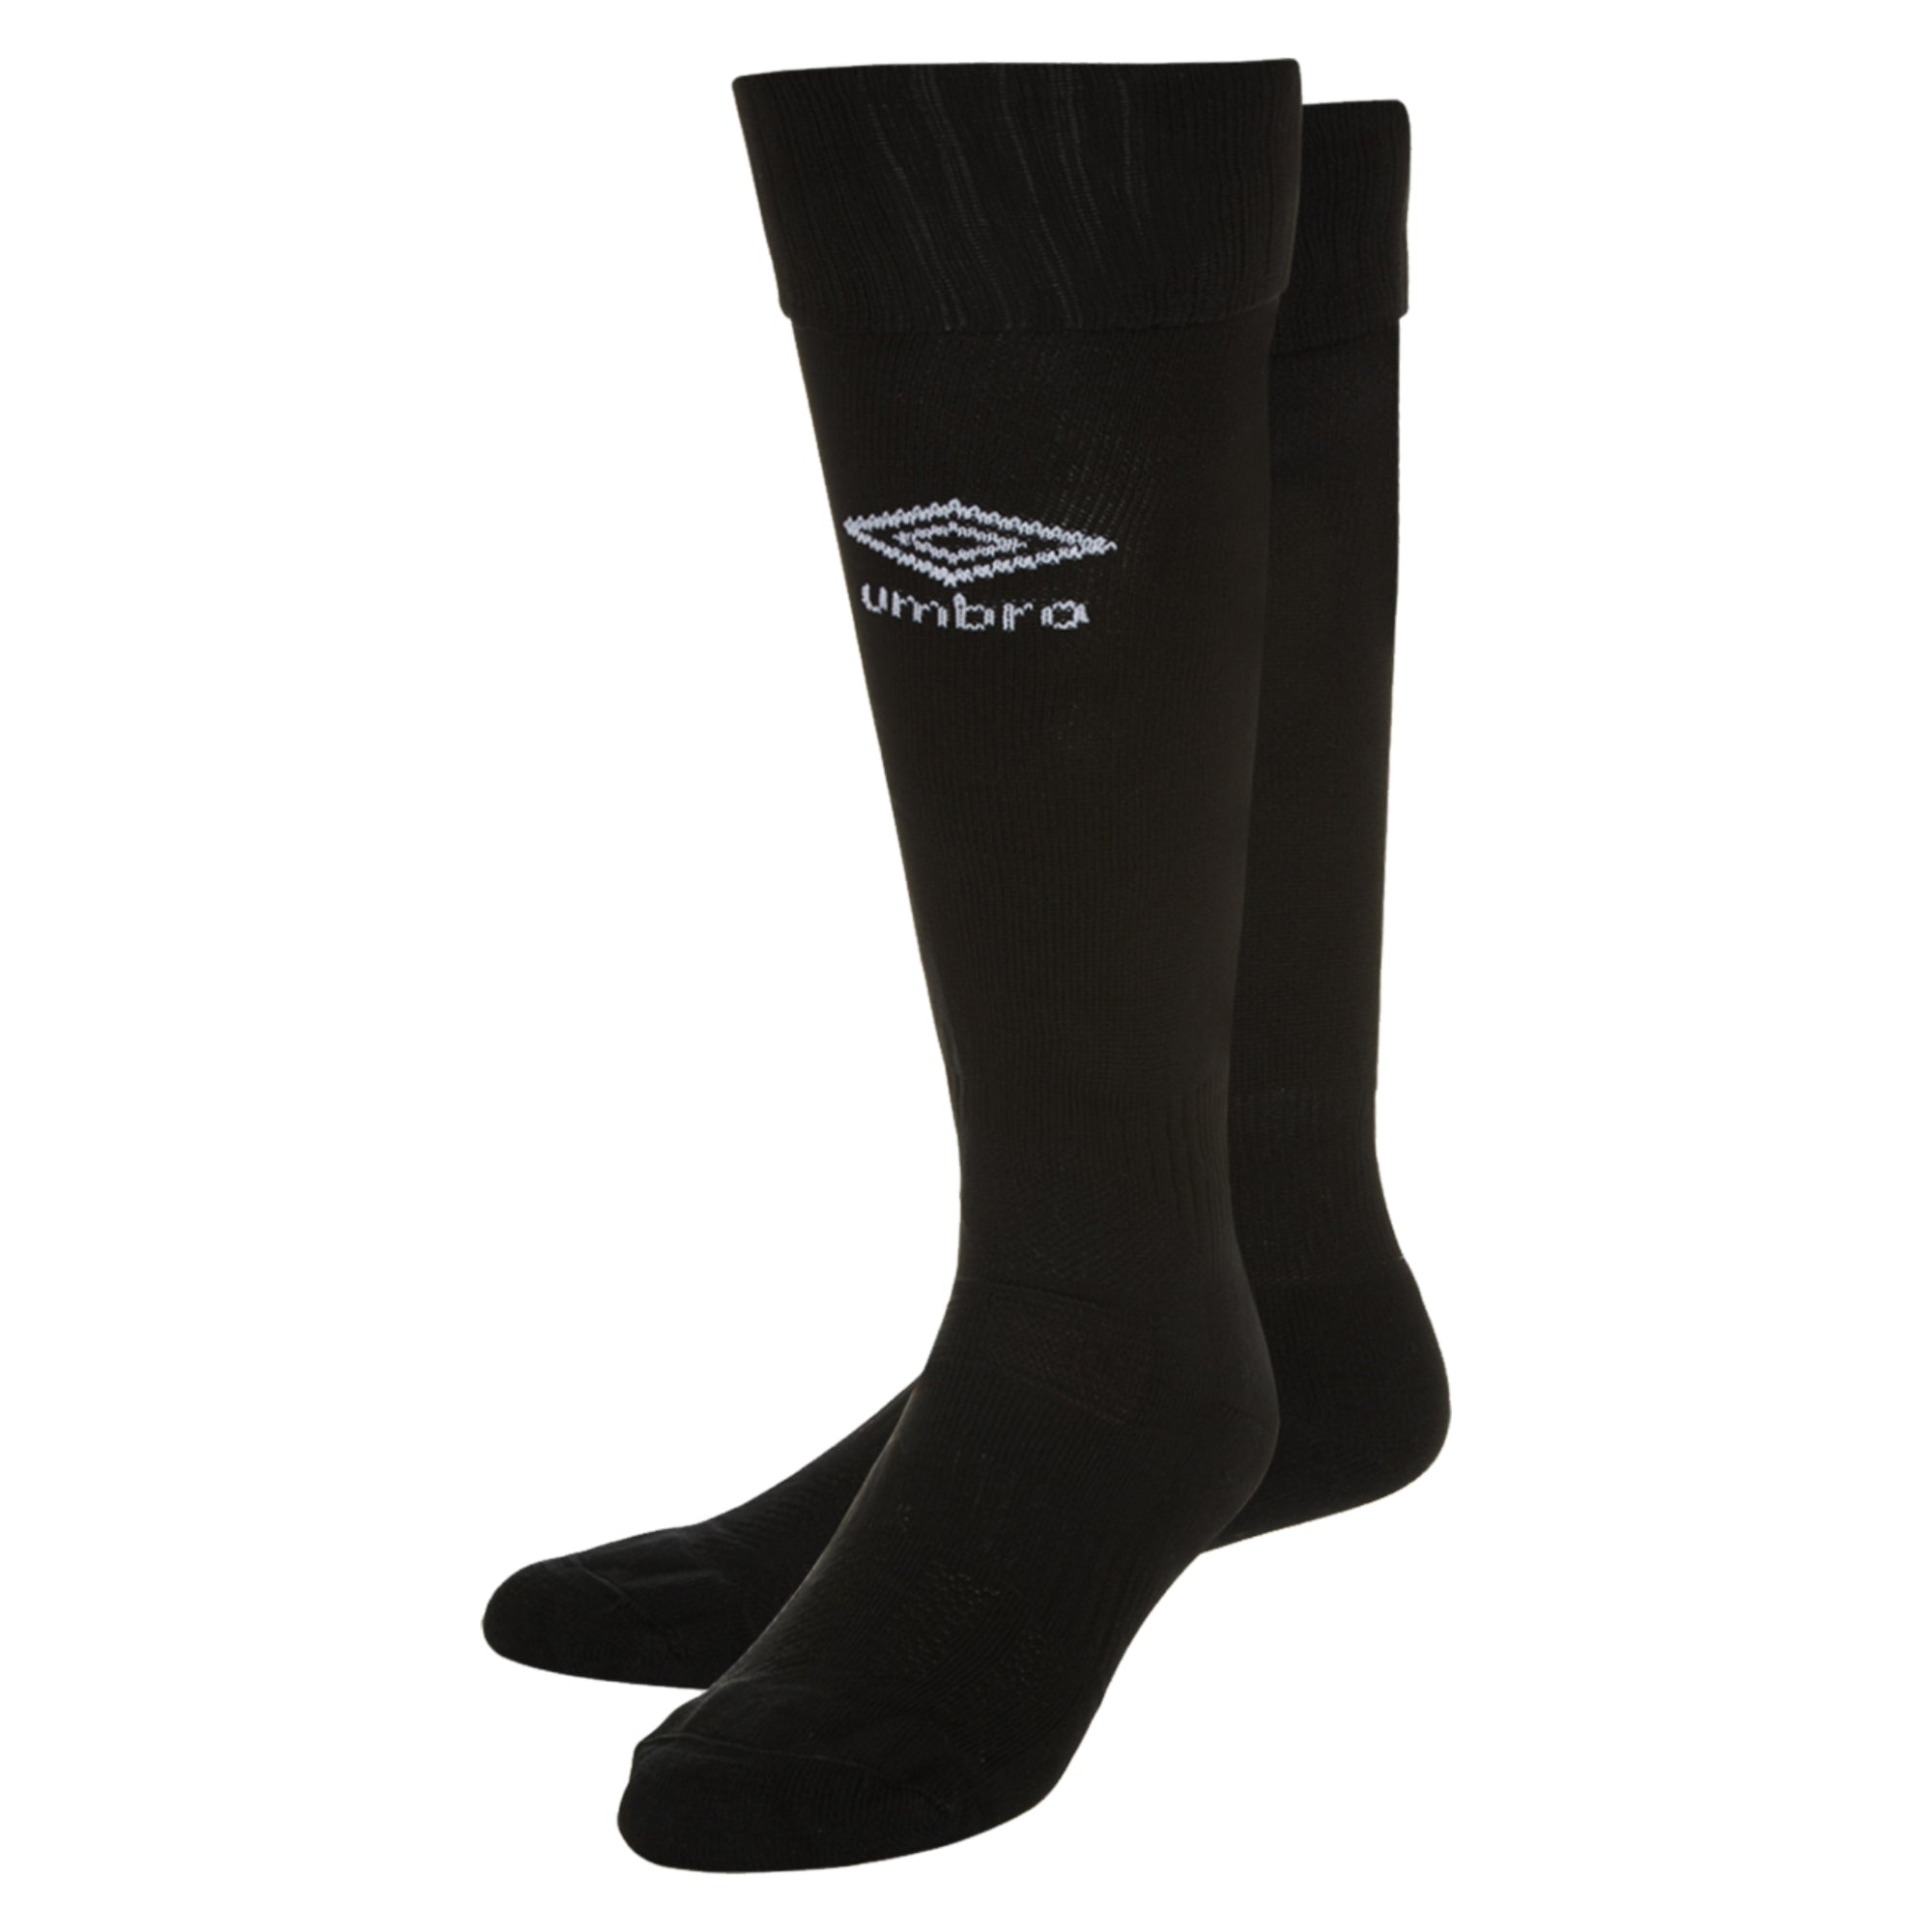 Umbro Classico Sock in Black